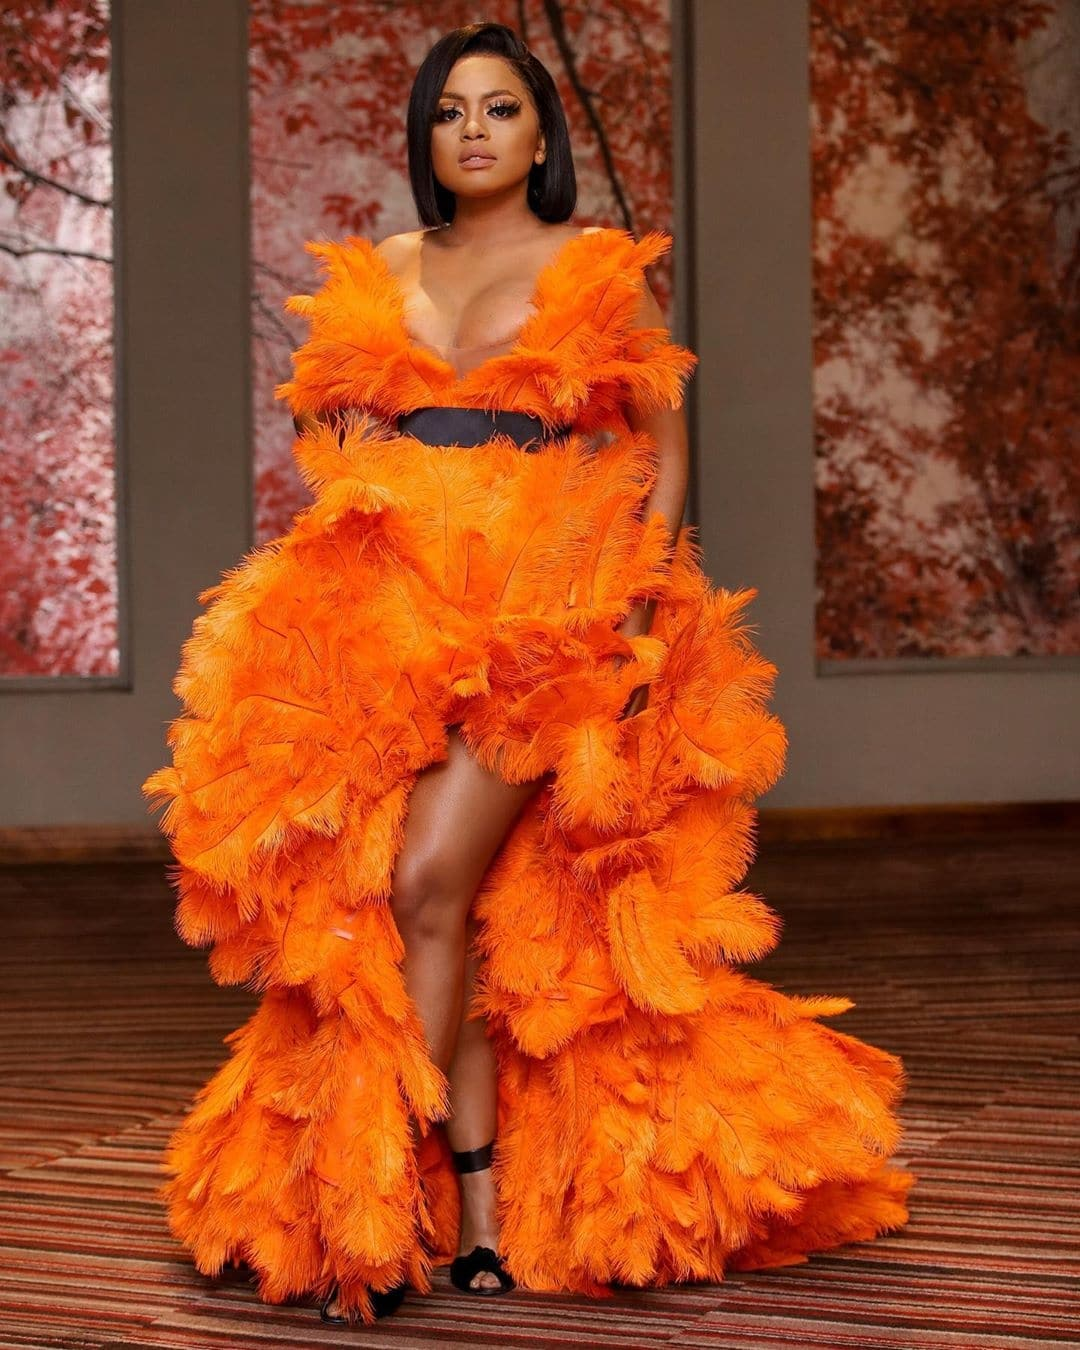 Lerato-kganyago-orange-feather-dress-the-most-rave-worthy-looks-on-women-across-africa-african-celebs-style